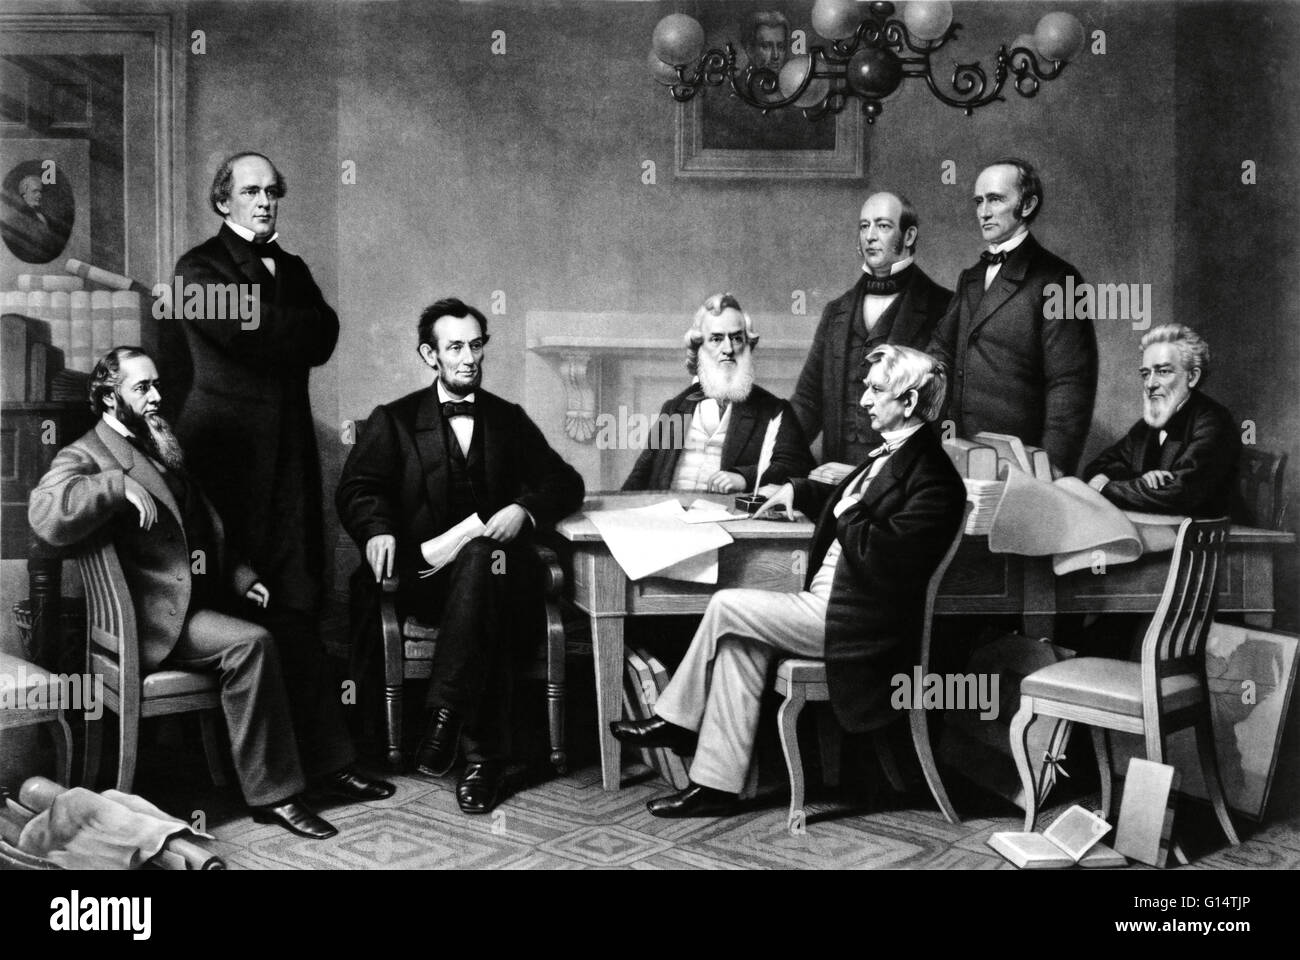 The first reading of the Emancipation Proclamation before the cabinet. Engraving by Alexander Hay Ritchie, 1866. - Stock Image